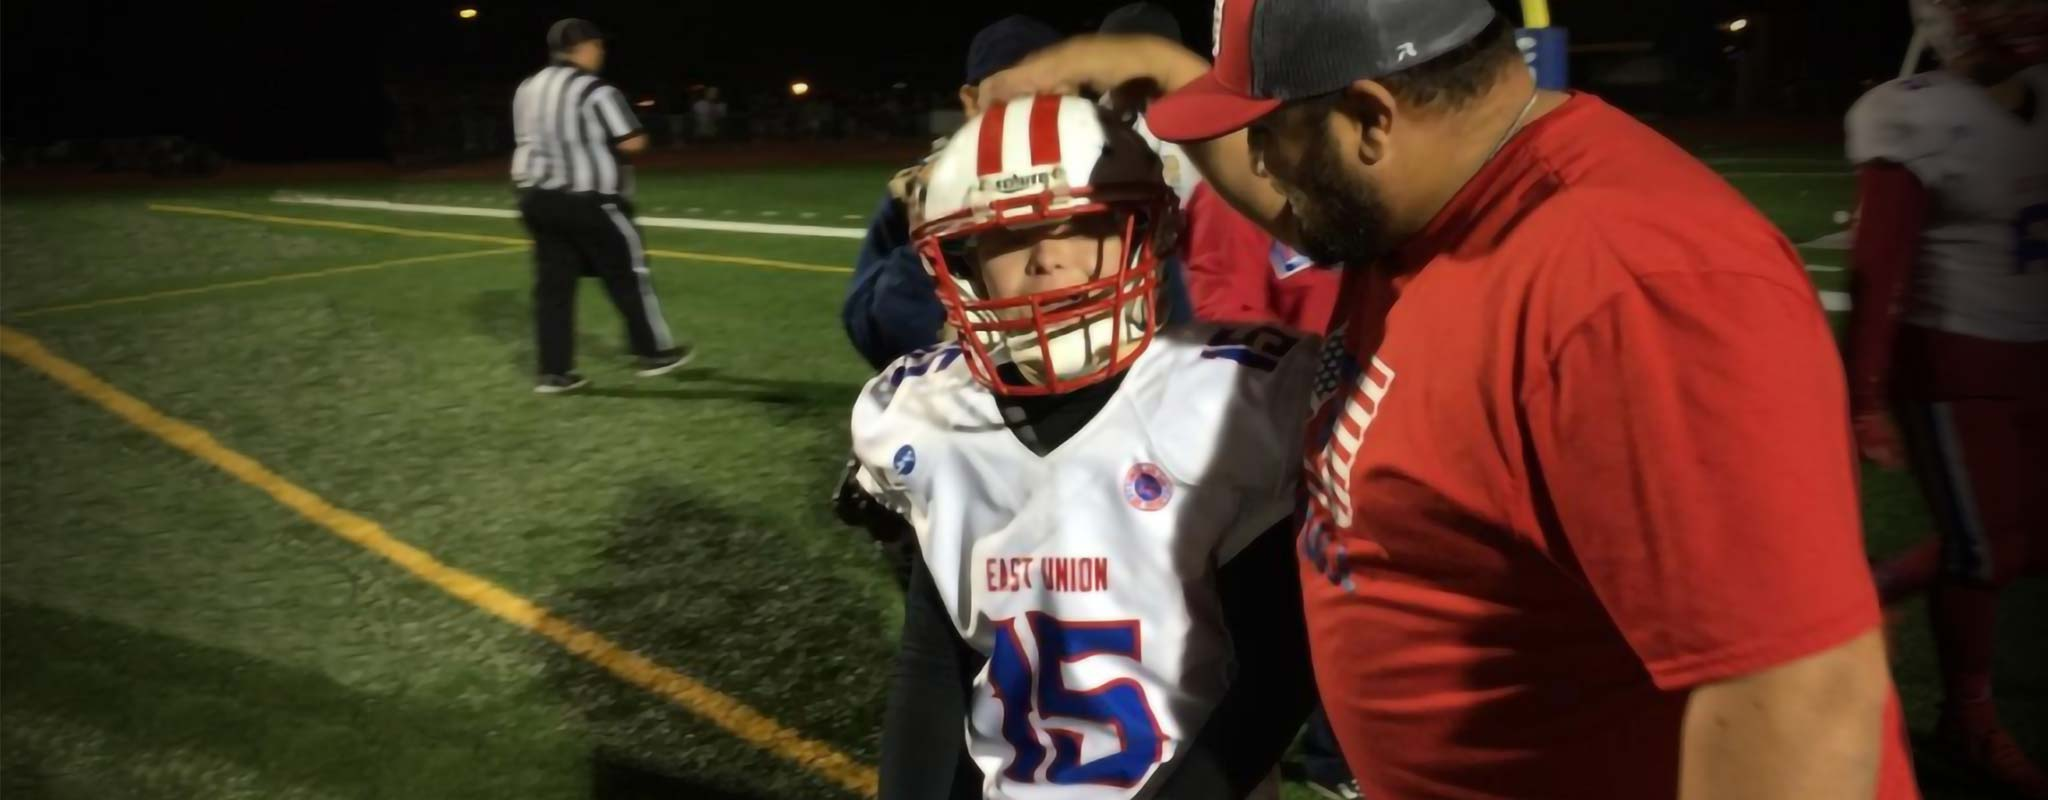 The East Union high school football coach pats a player on their head.